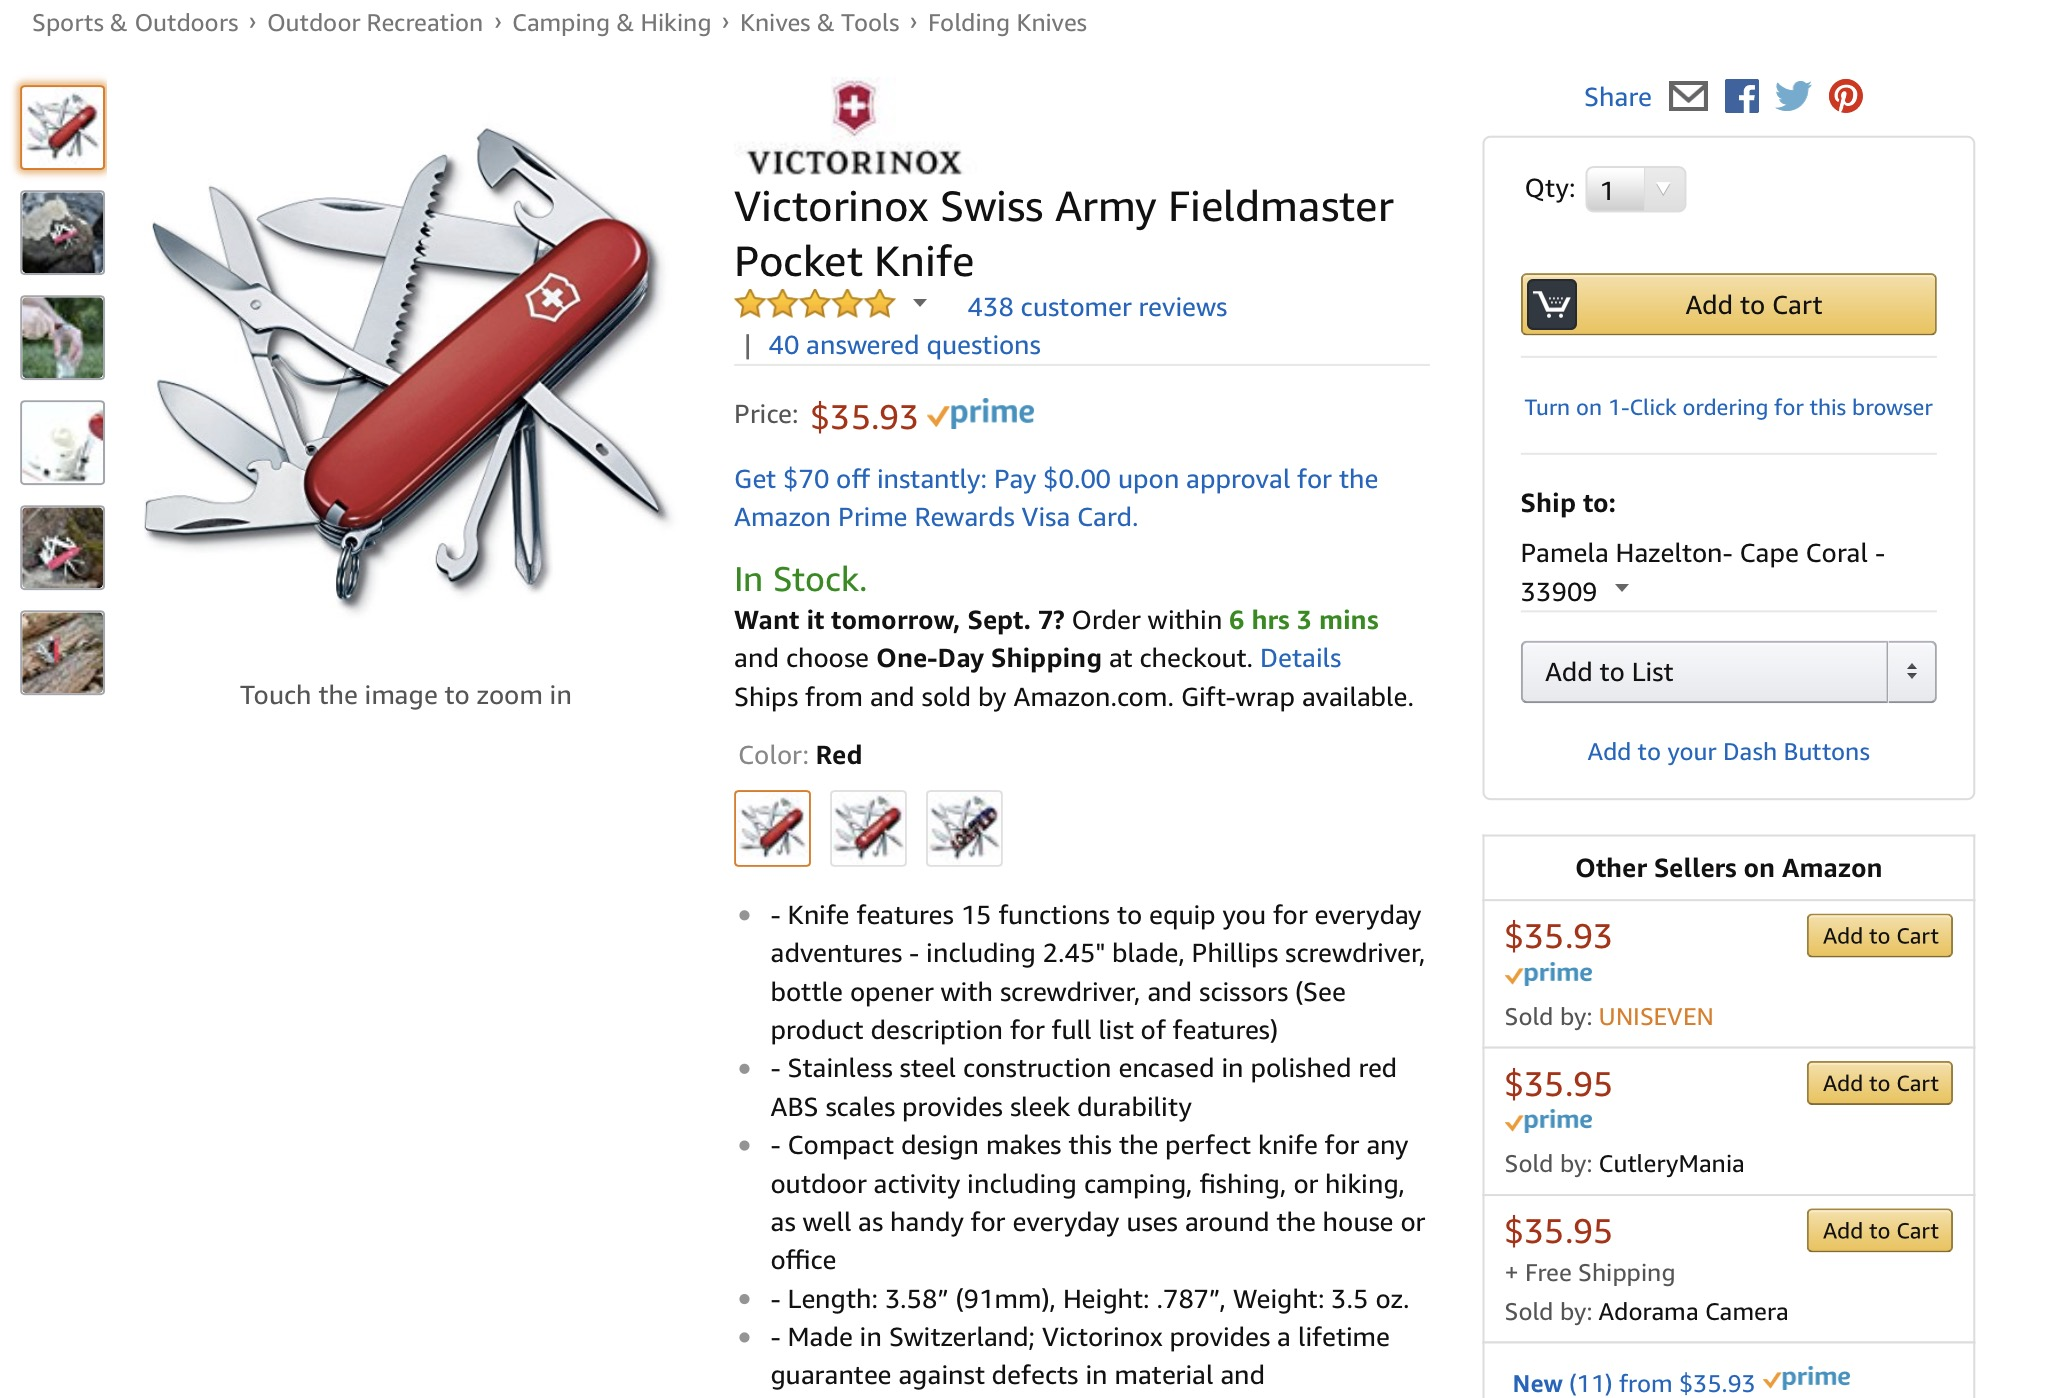 Swiss Army Knife tool at Amazon.